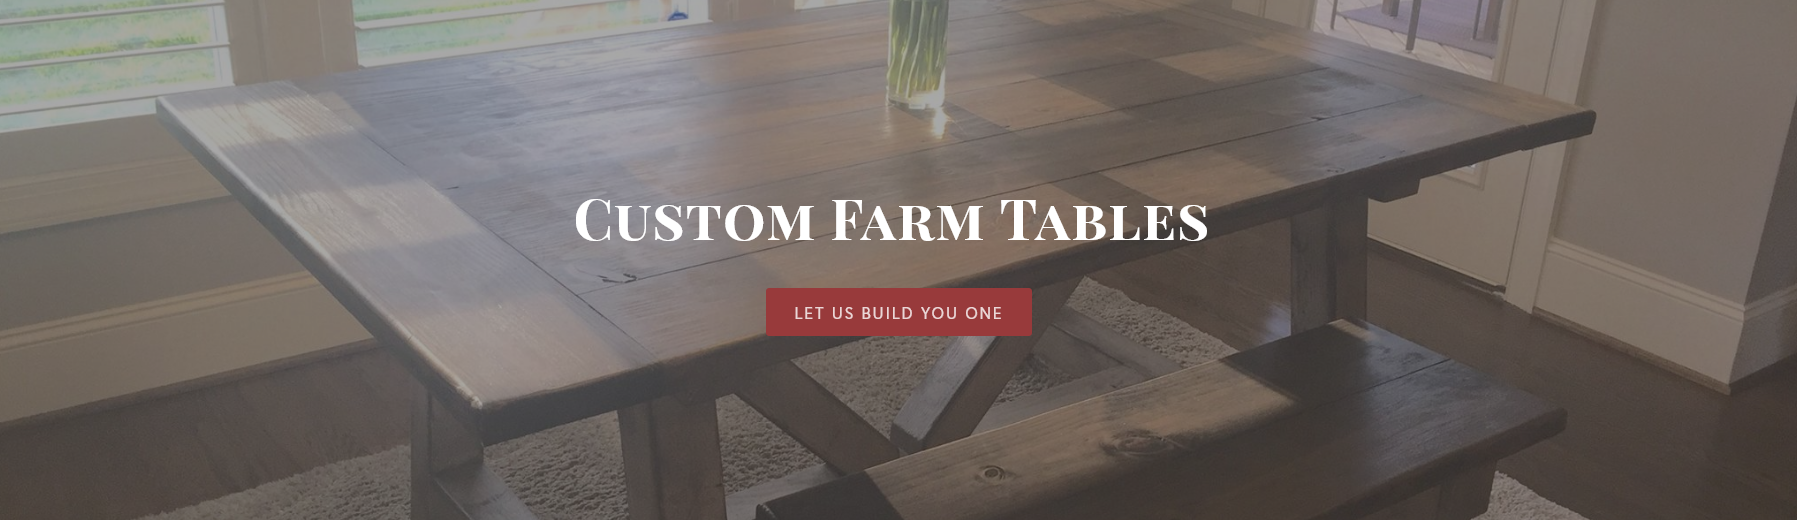 RB_CustomFarmTable_1.png